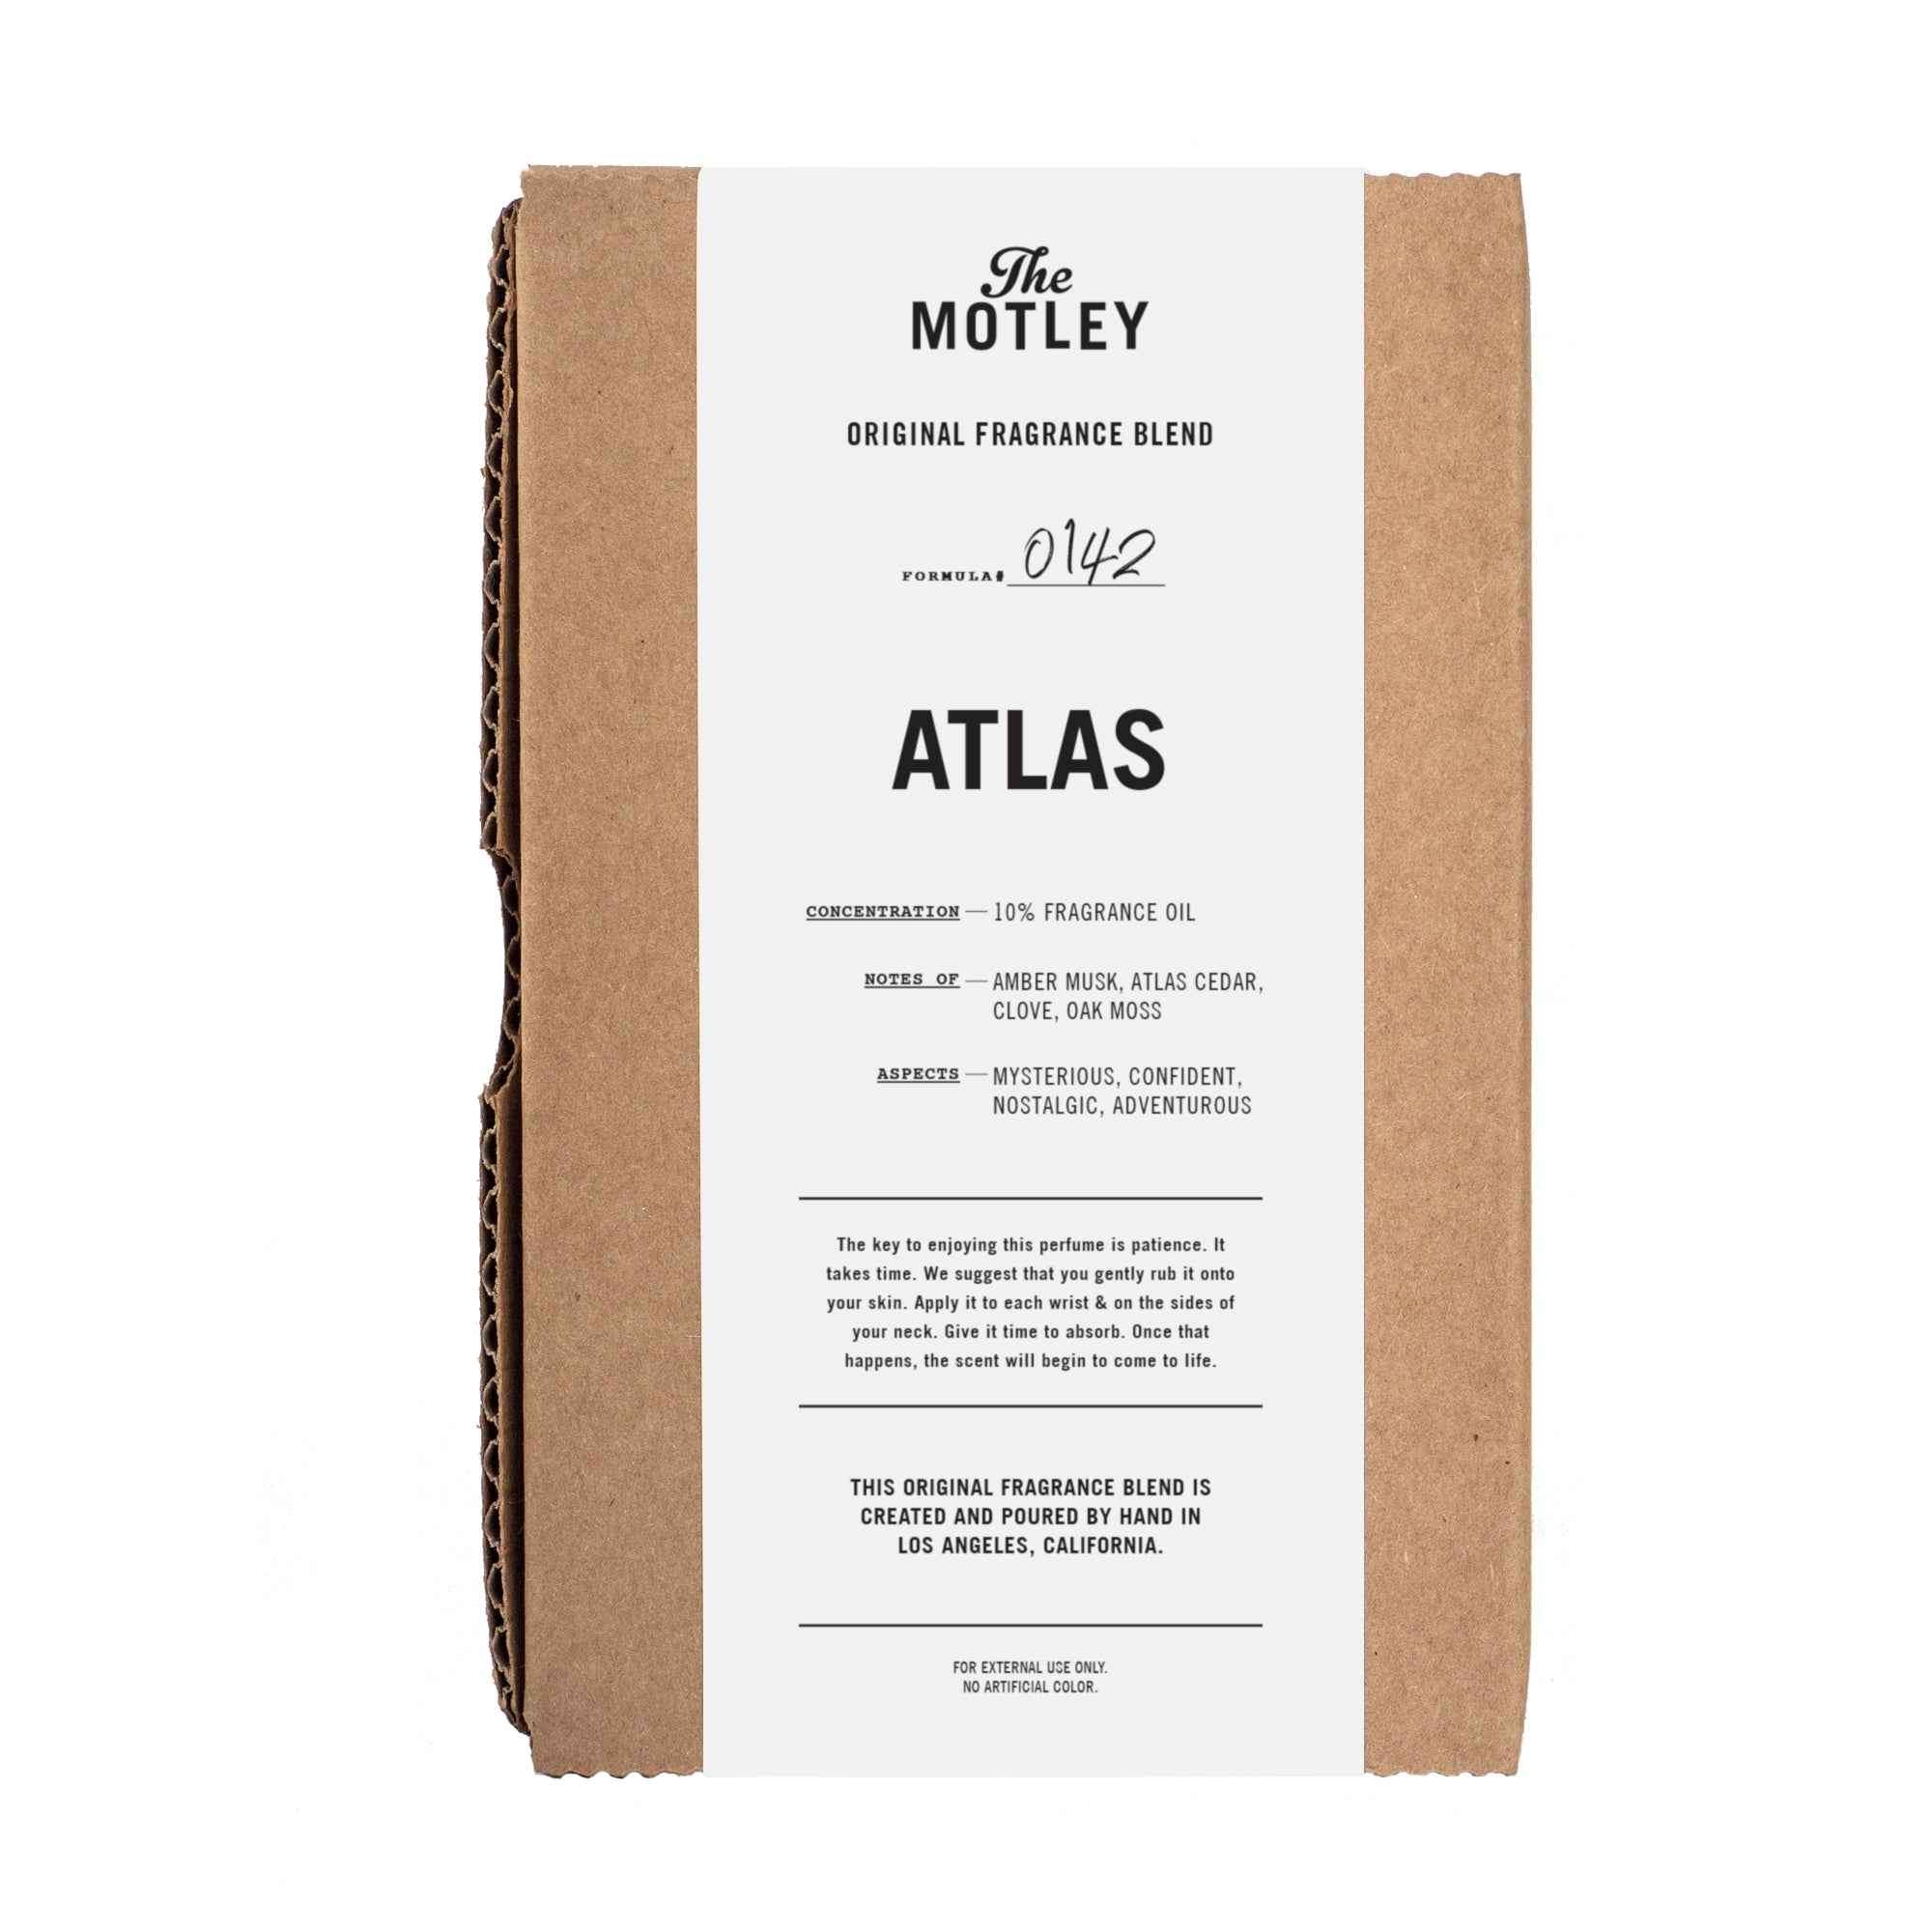 The Motley Atlas Cologne - The Motley